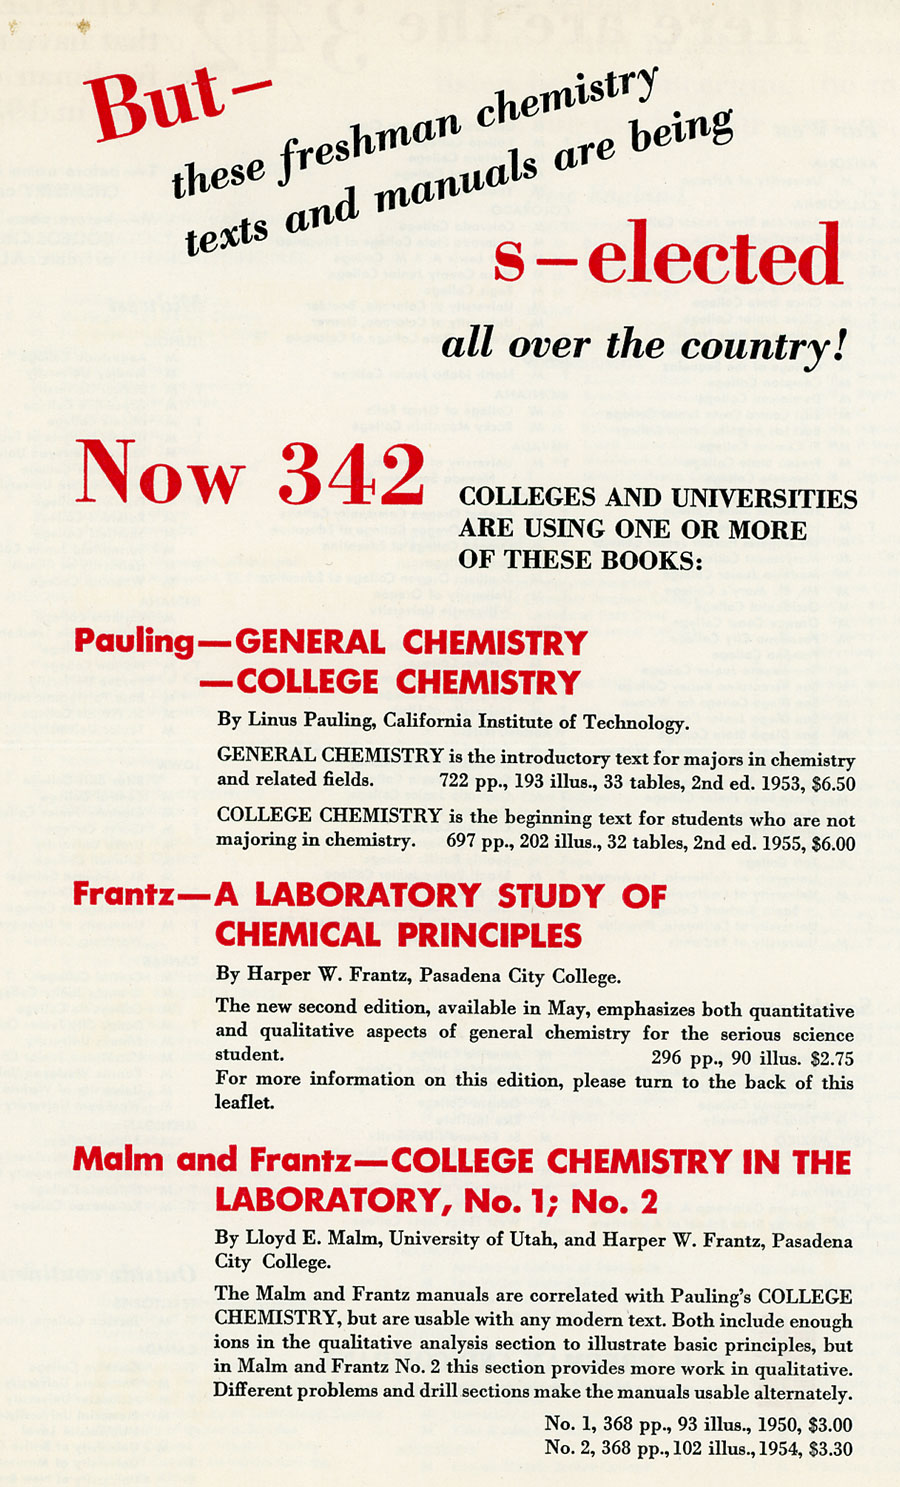 General Chemistry, Second Edition | PaulingBlog